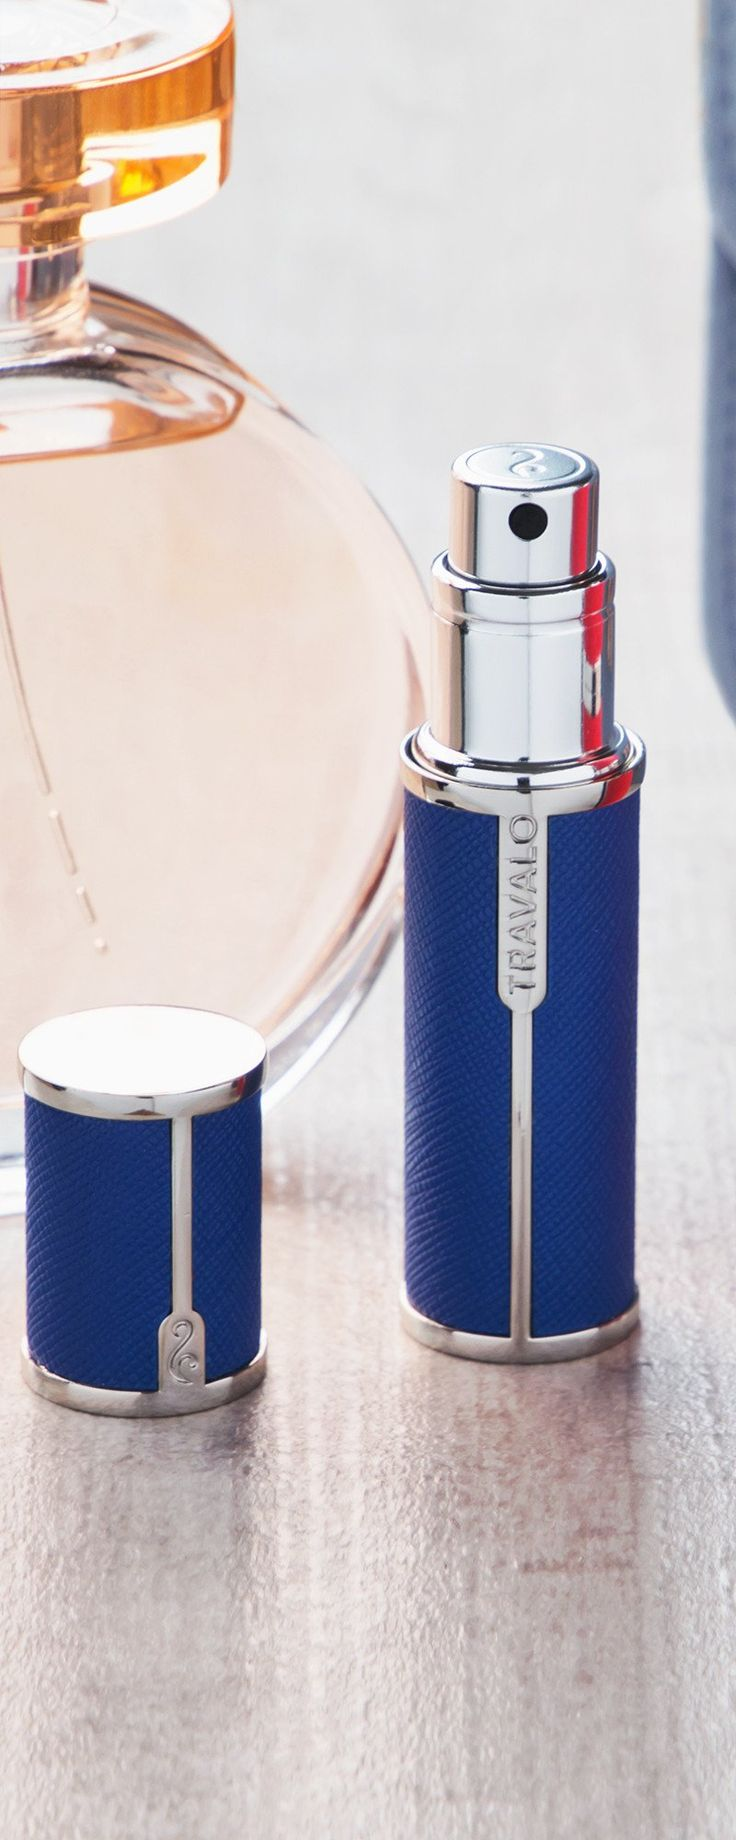 Take your favorite fragrance on the go with a pocket-sized, refillable perfume atomizer.